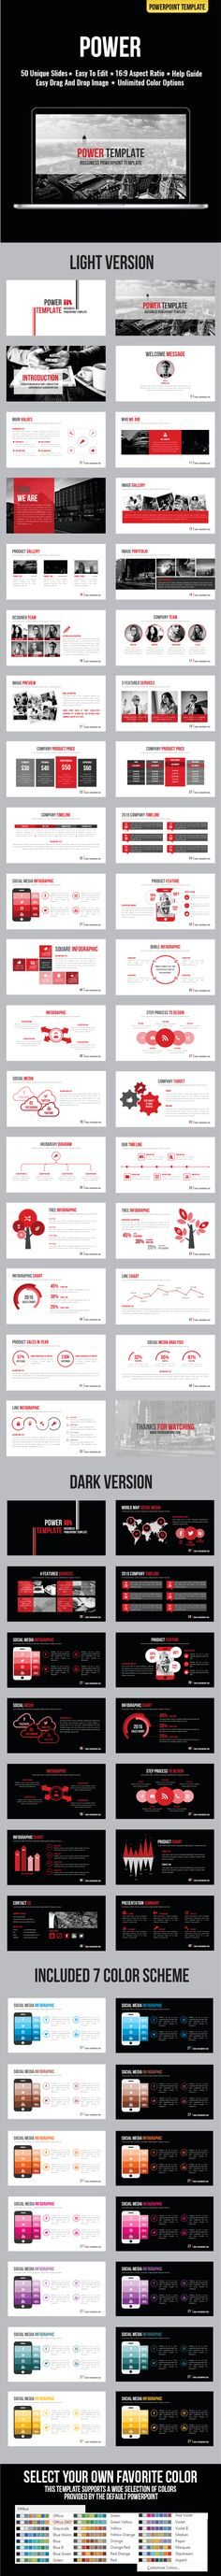 Agasha - Powerpoint Template (Powerpoint Templates) | Proposals